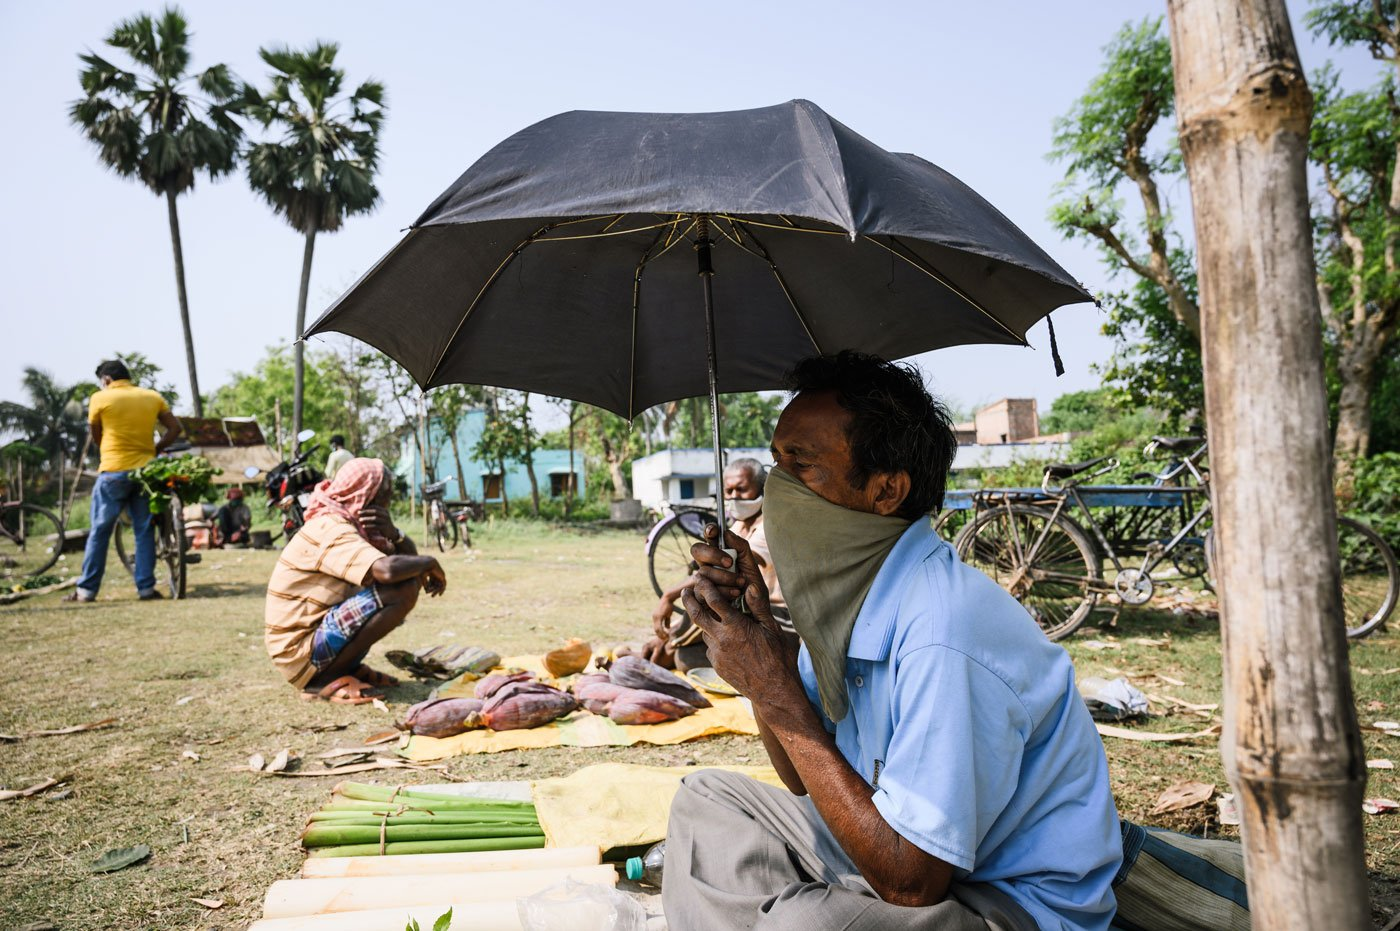 "Without a plastic sheet to use as a temporary shade from the sun, Sadananda Roy, 58, sits in middle of the field with a few vegetables holding an umbrella. He was a domestic worker in Delhi, but came home before the lockdown. His only income now is from selling a few vegetables, which fetches him Rs 50-100 a day. ""I didn't come here regularly because some days I don't have vegetables to sell,"" he says. ""I don't know what will happen in the future."""